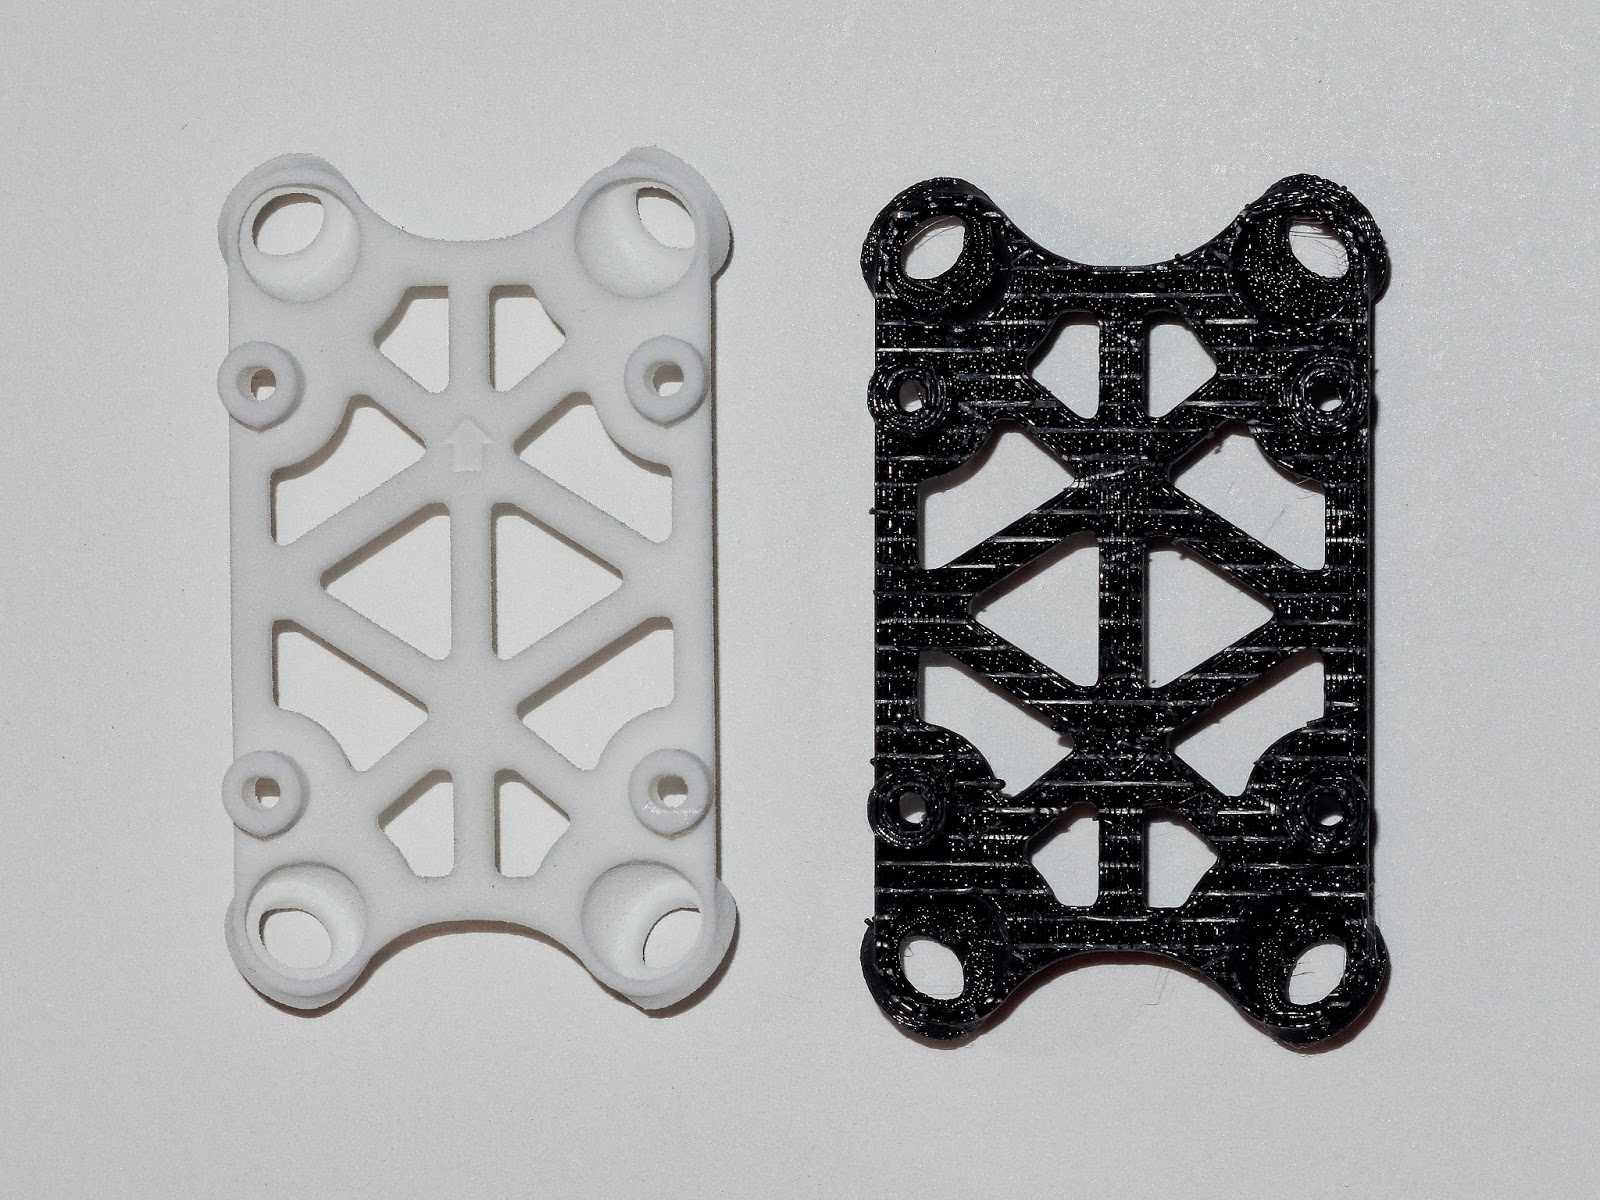 A Review of 3D Printing Services: Shapeways, 3D Hubs and